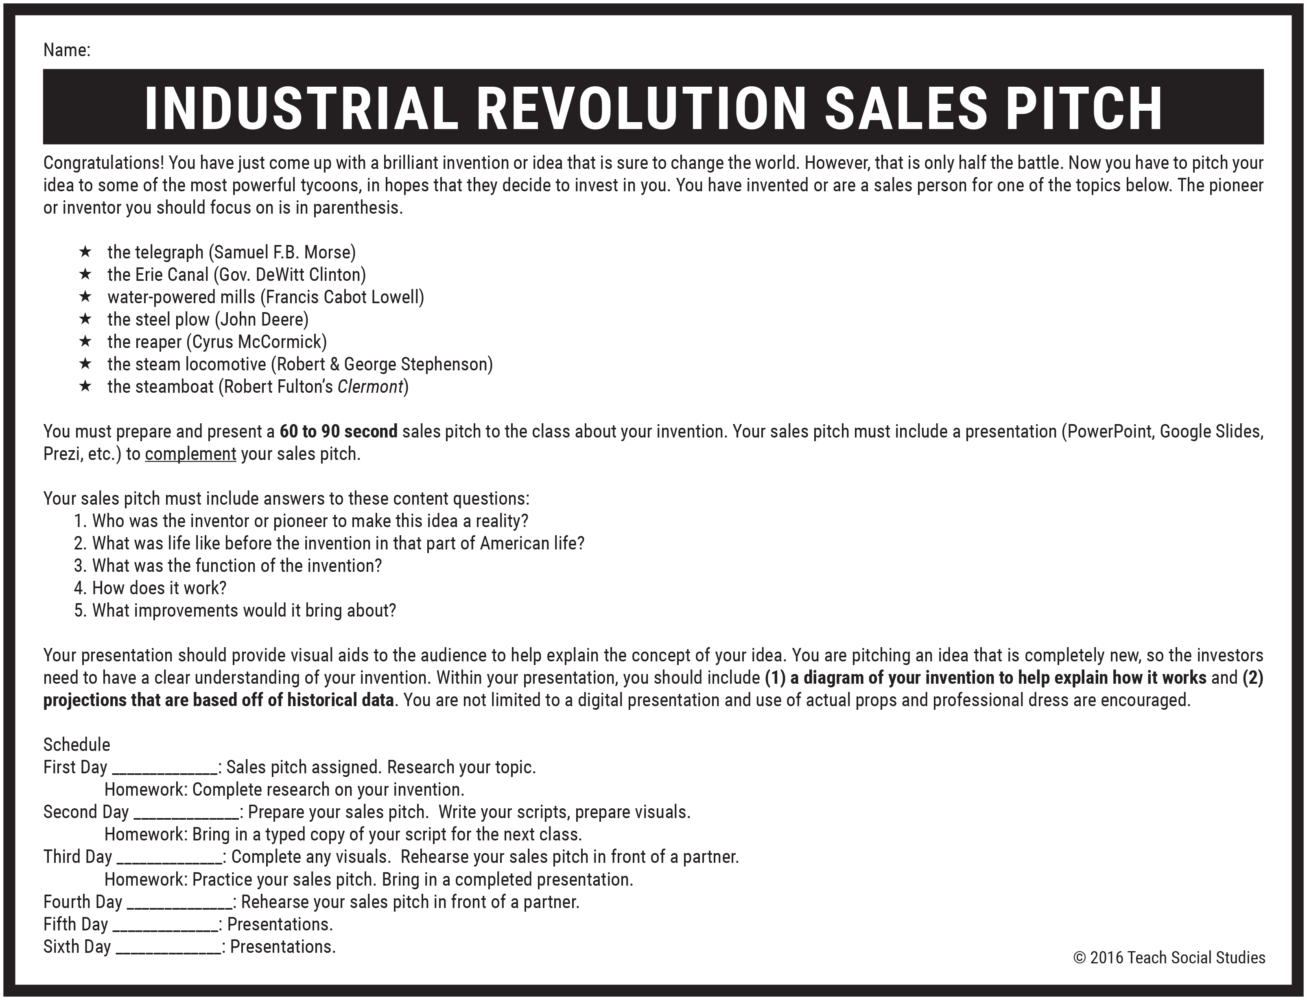 Industrial Revolution Sales Pitch LP